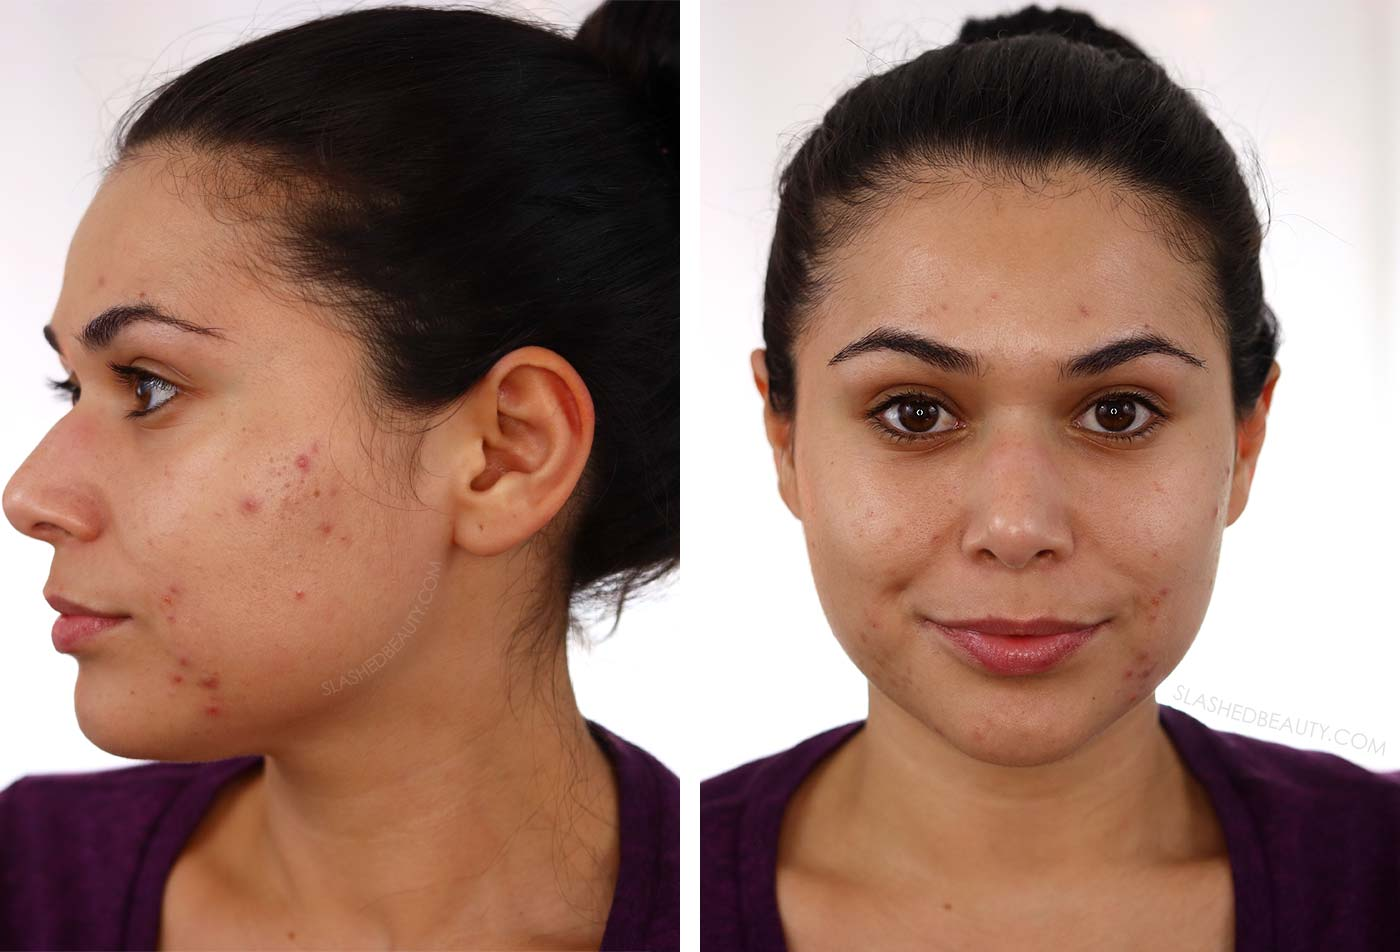 BEFORE Going Dairy Free for Acne: My 30 Day Results | Does Going Dairy Free Help with Acne? | Slashed Beauty